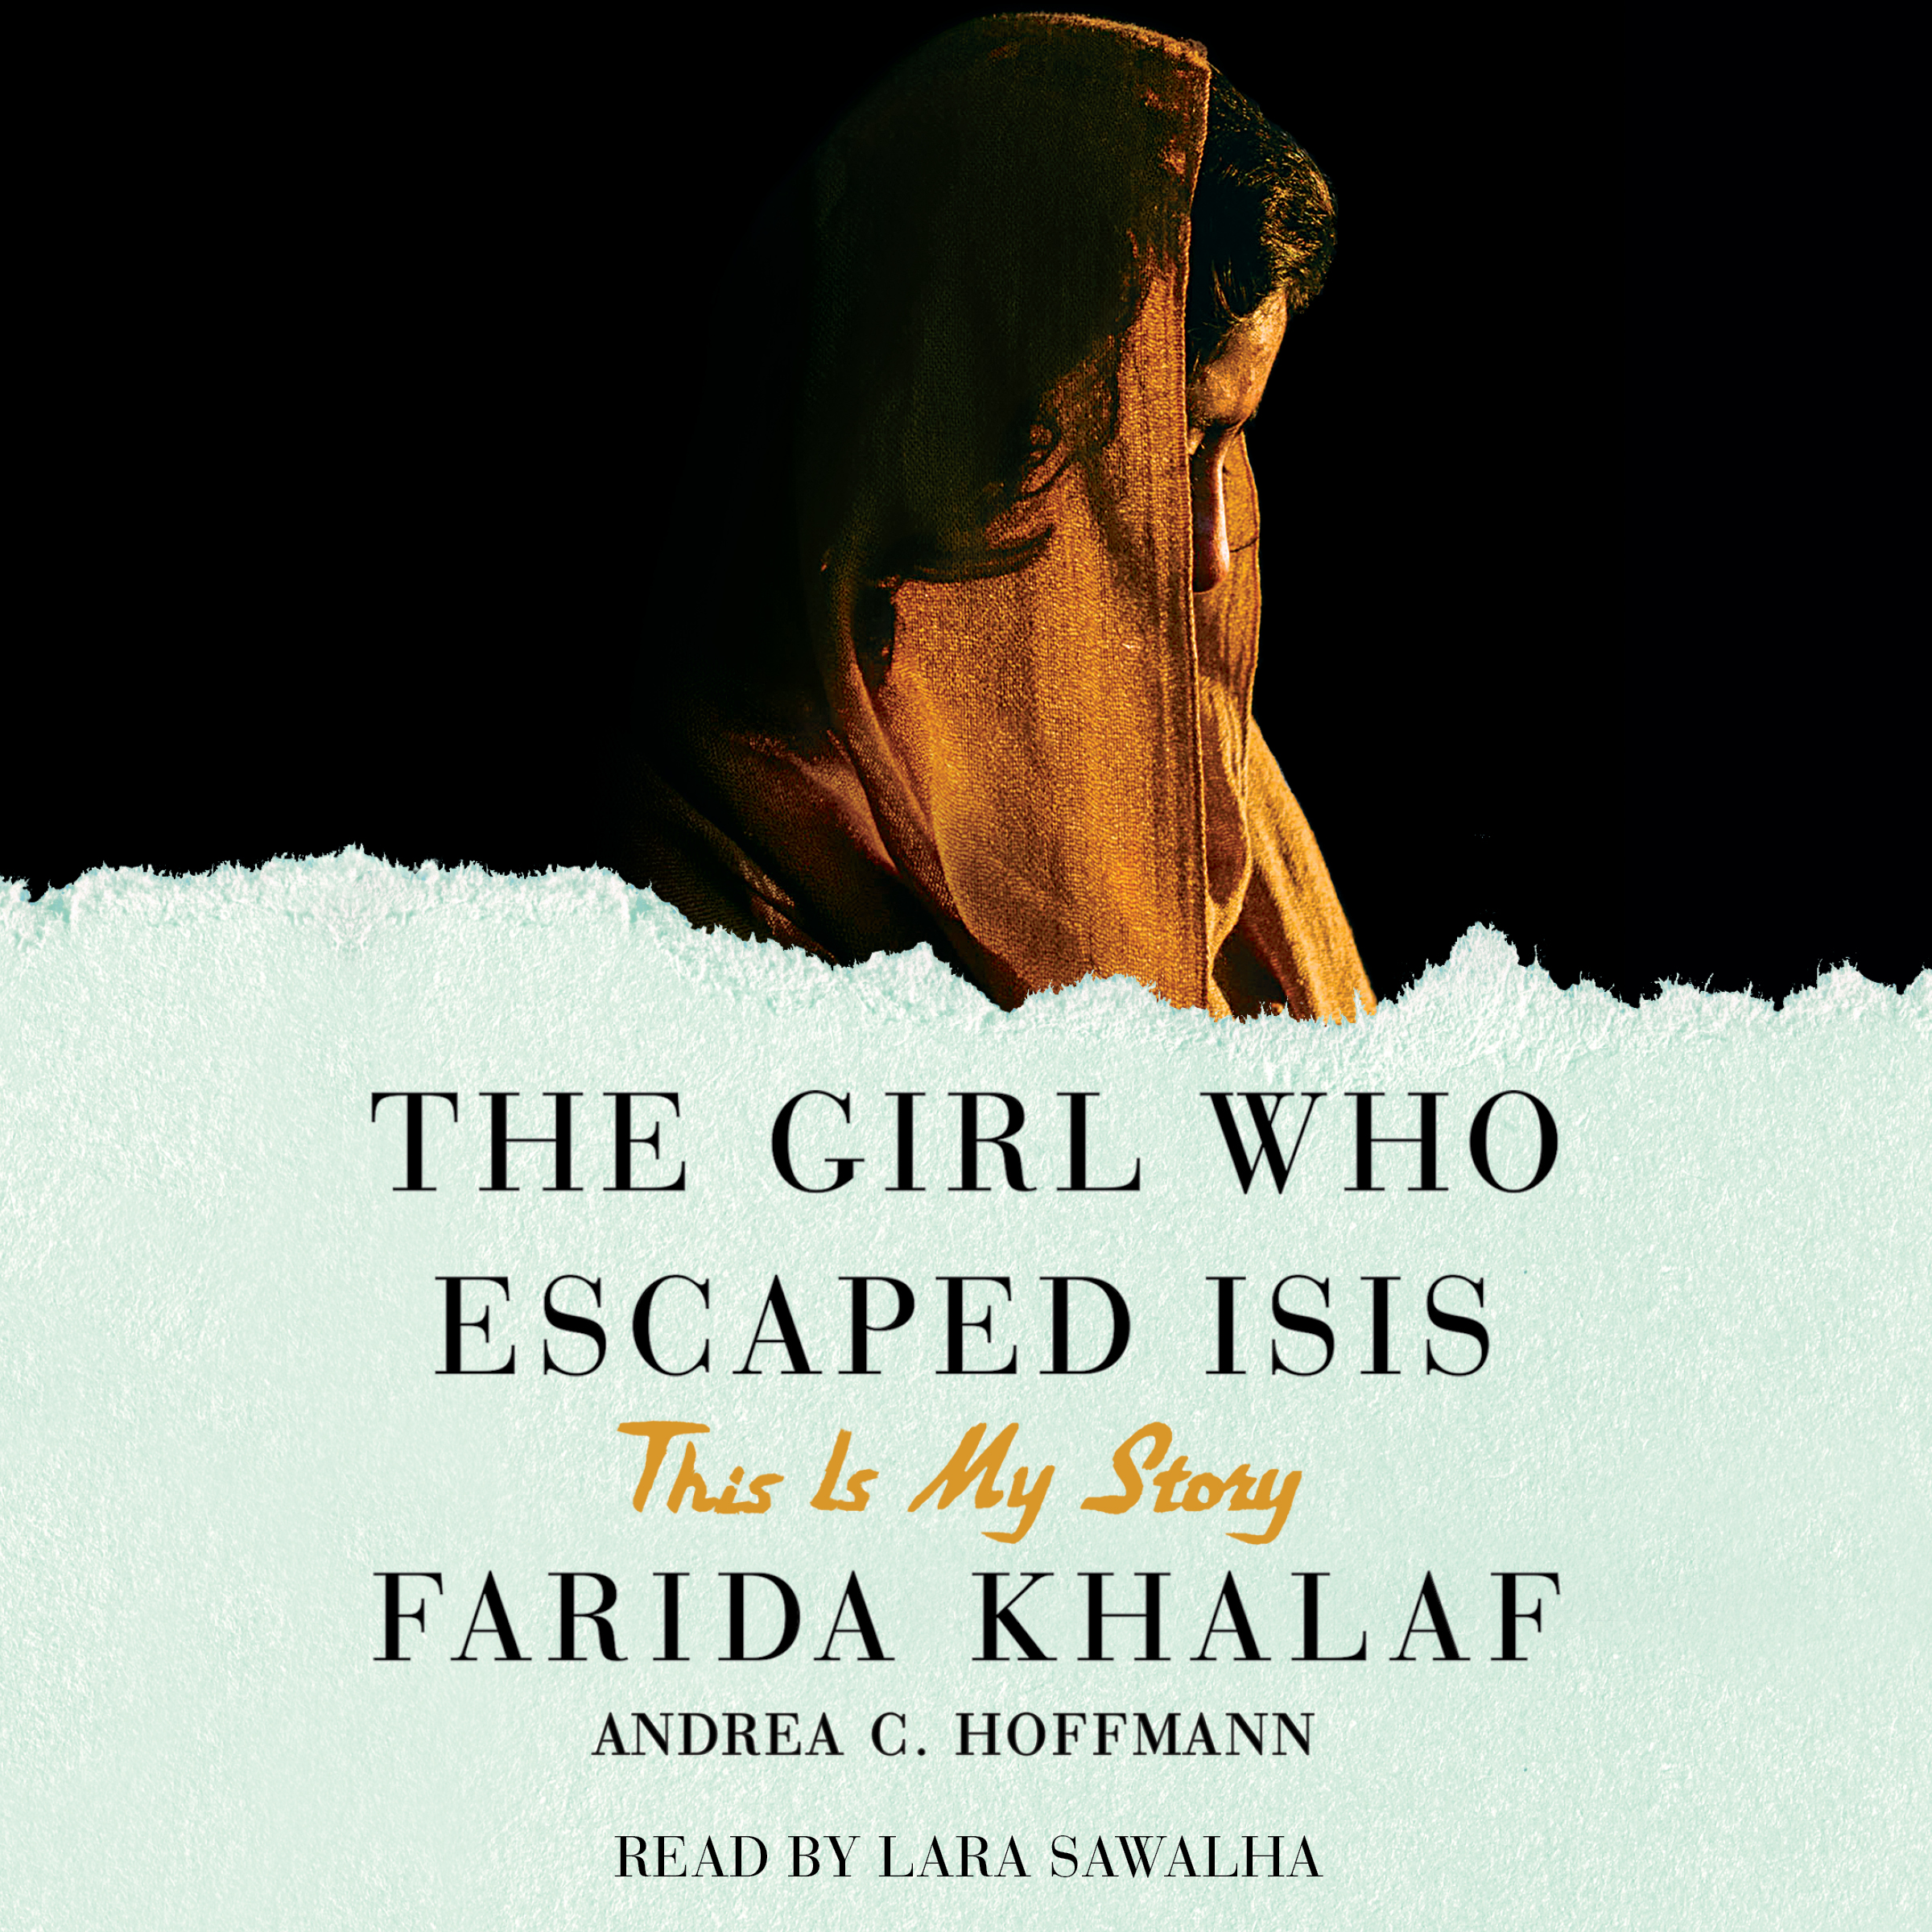 The girl who escaped isis 9781508225201 hr